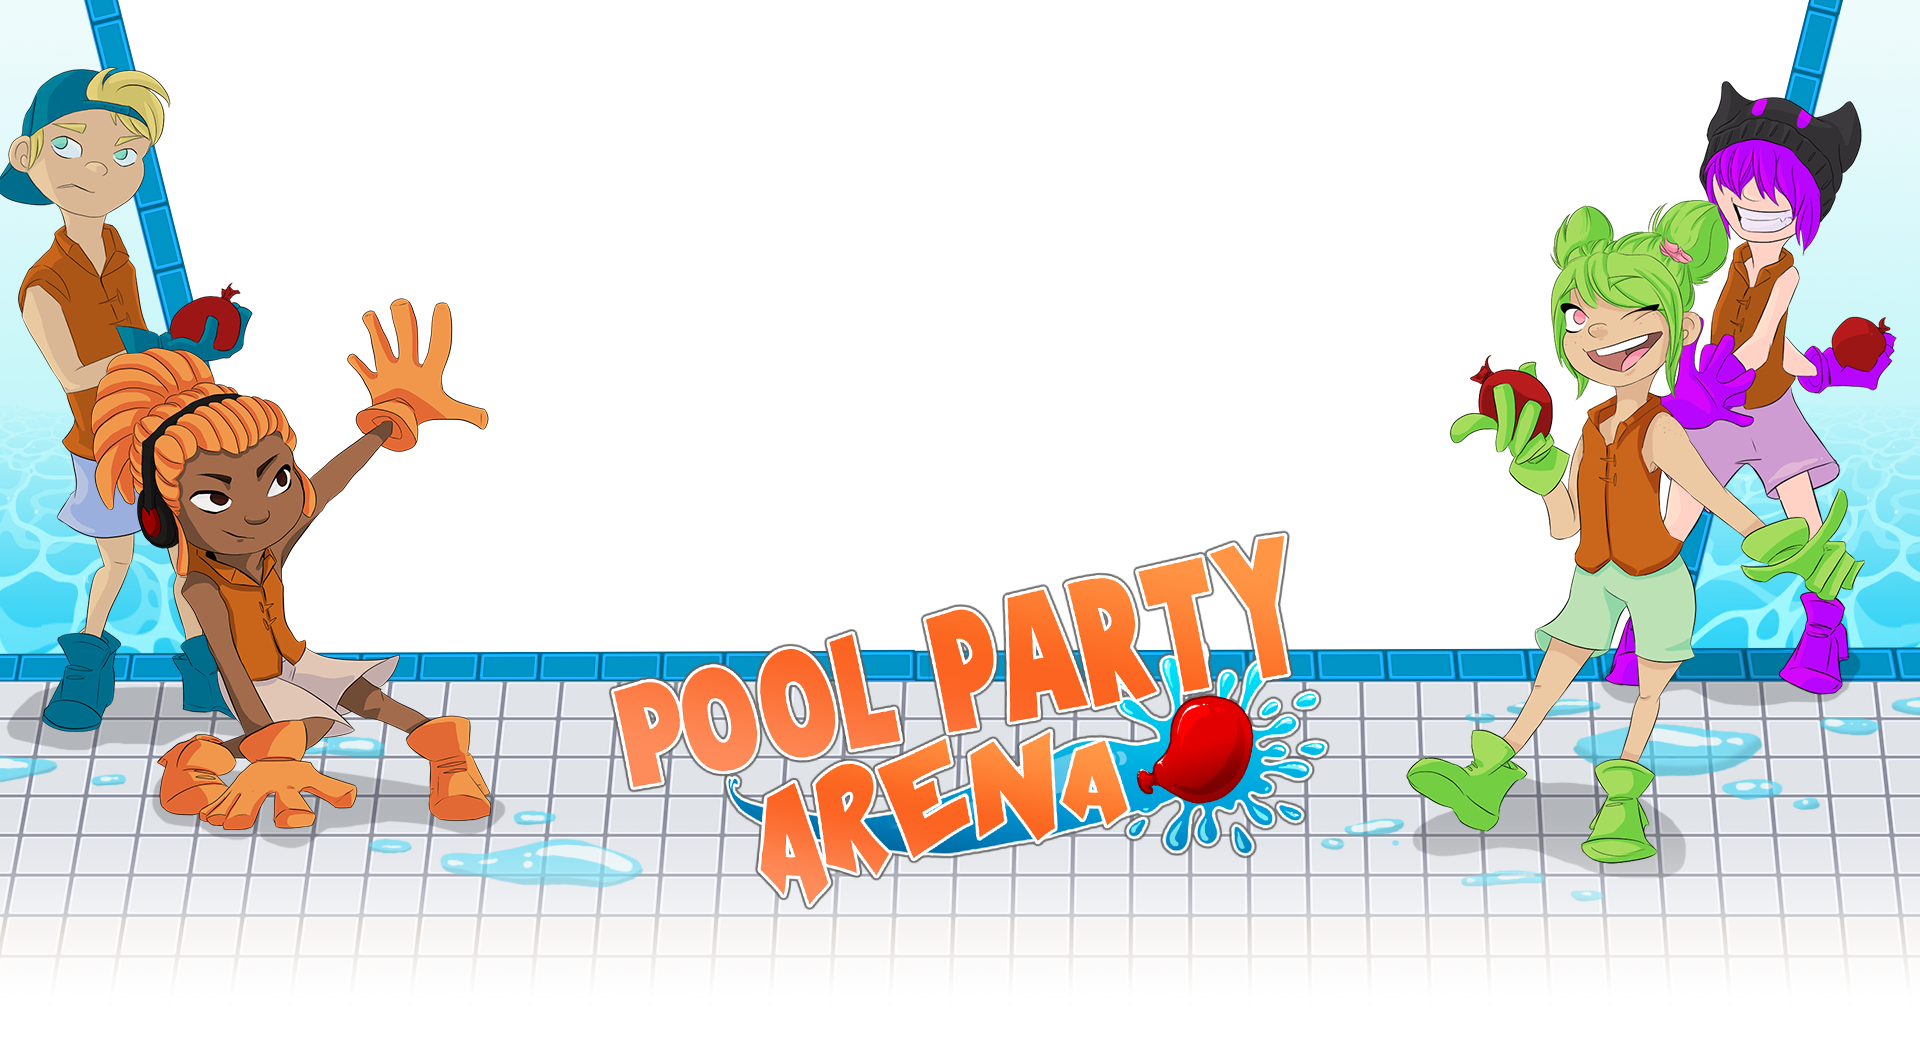 Pool party frame png. Arena